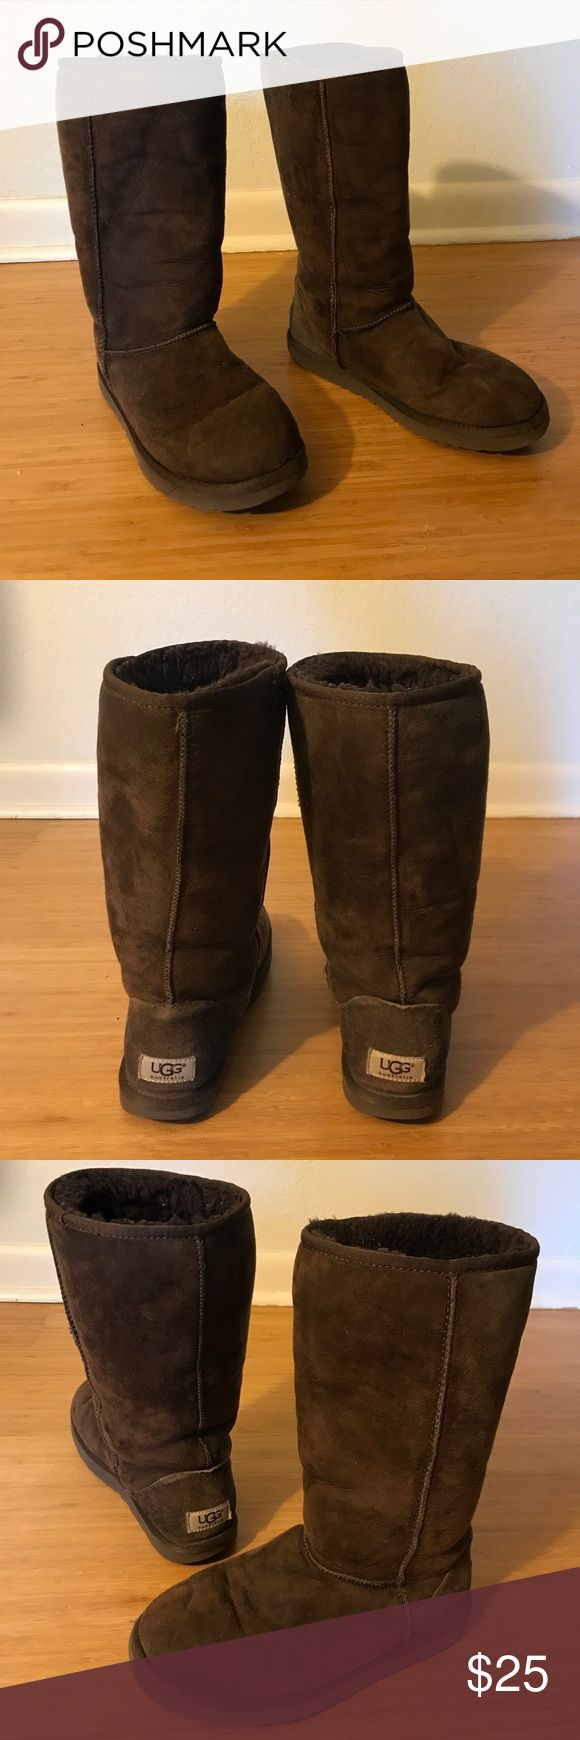 UGG Boots! Brown Classic Tall UGG boots, size 7 In great shape! Size 7, dark brown UGG boots. UGG Shoes Winter & Rain Boots